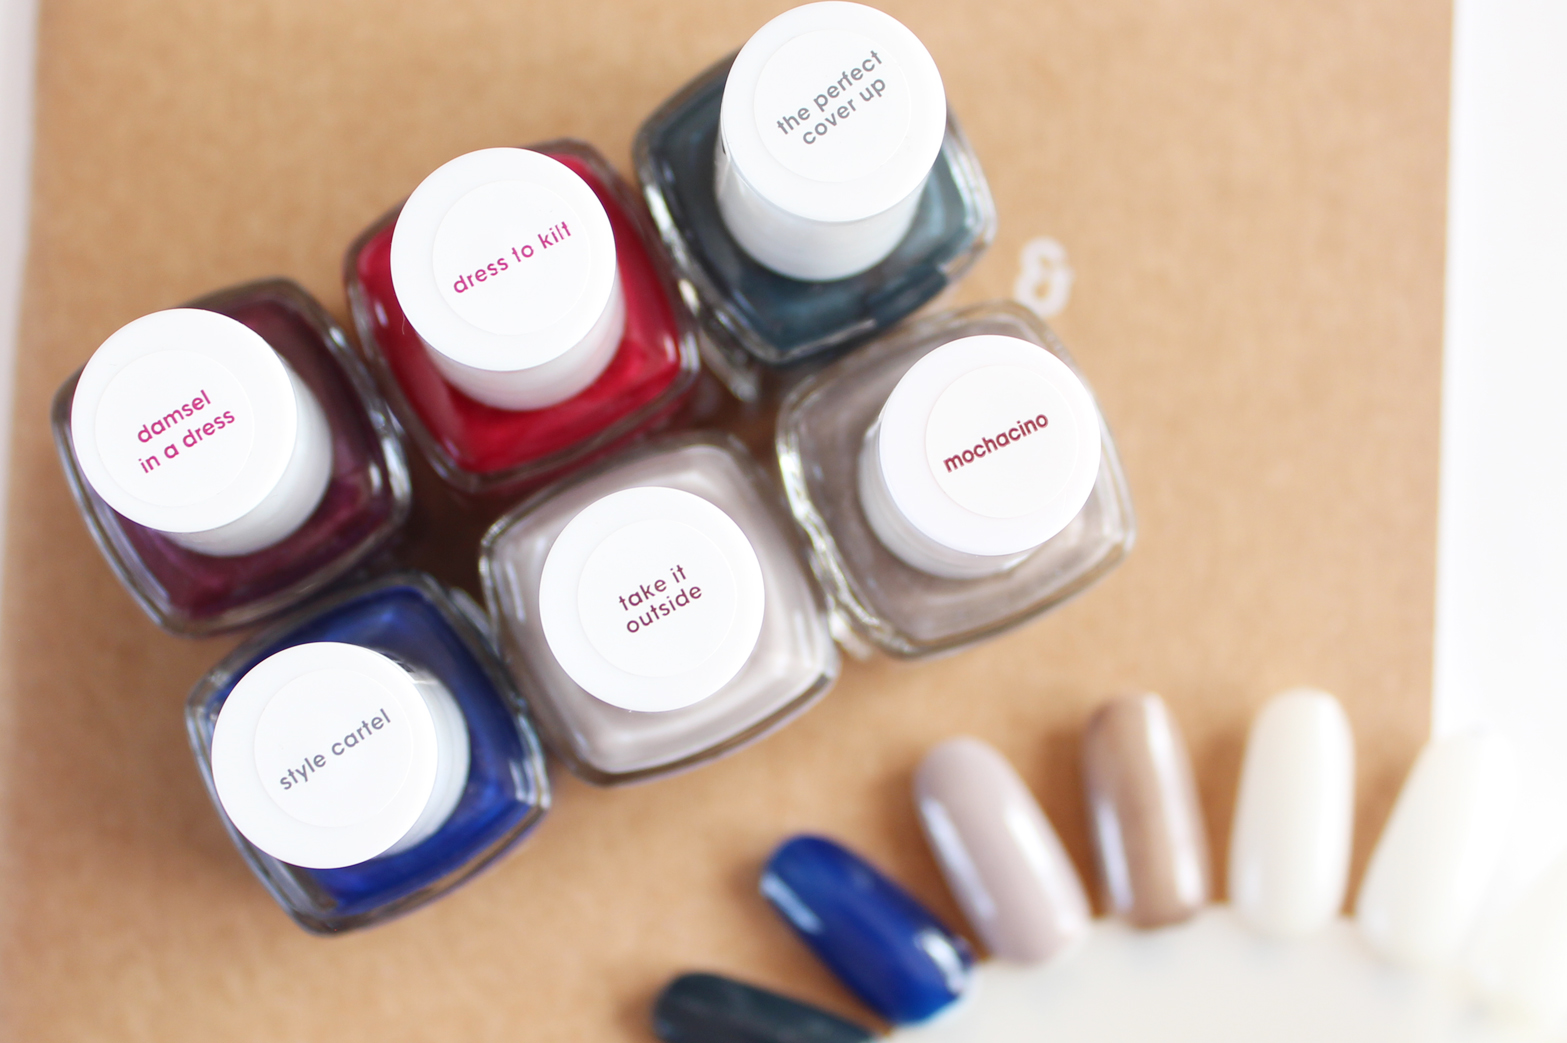 ESSIE HAUL [Yes, I Bought More Nail Polish...] - CassandraMyee